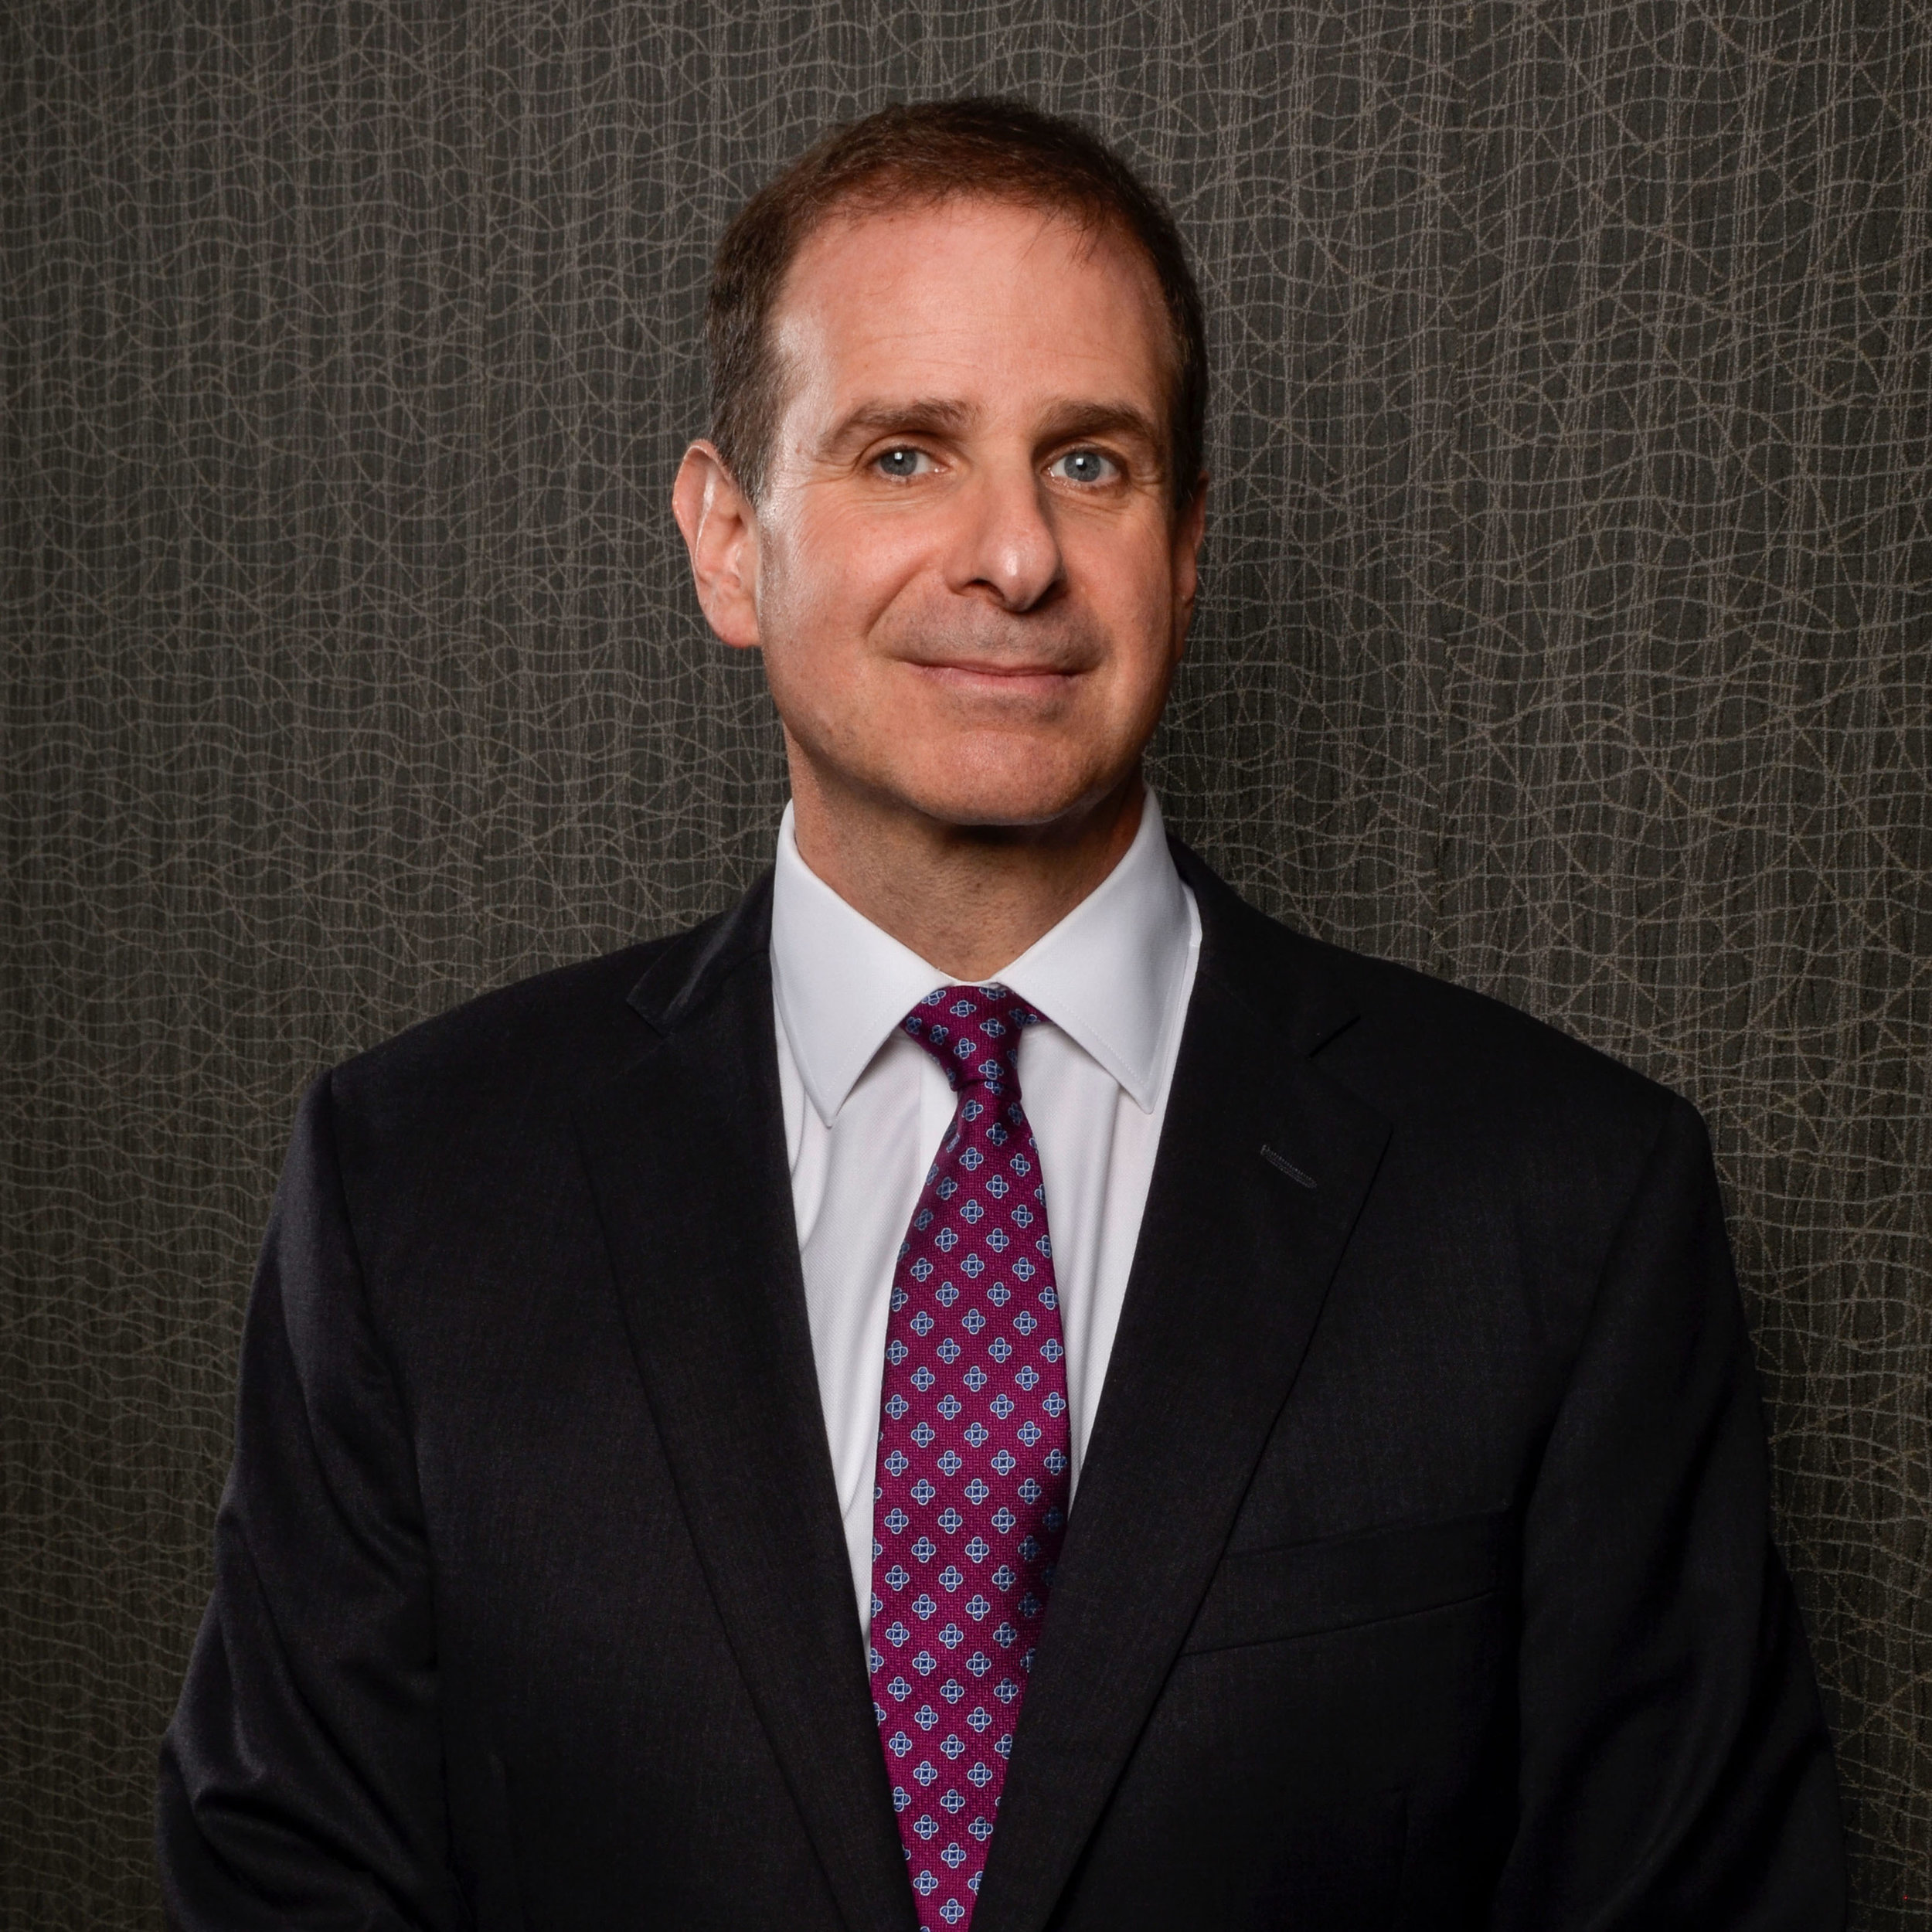 William S. Henry  Chief Operating Officer and Portfolio Manager  bill@firstfiduciary.com